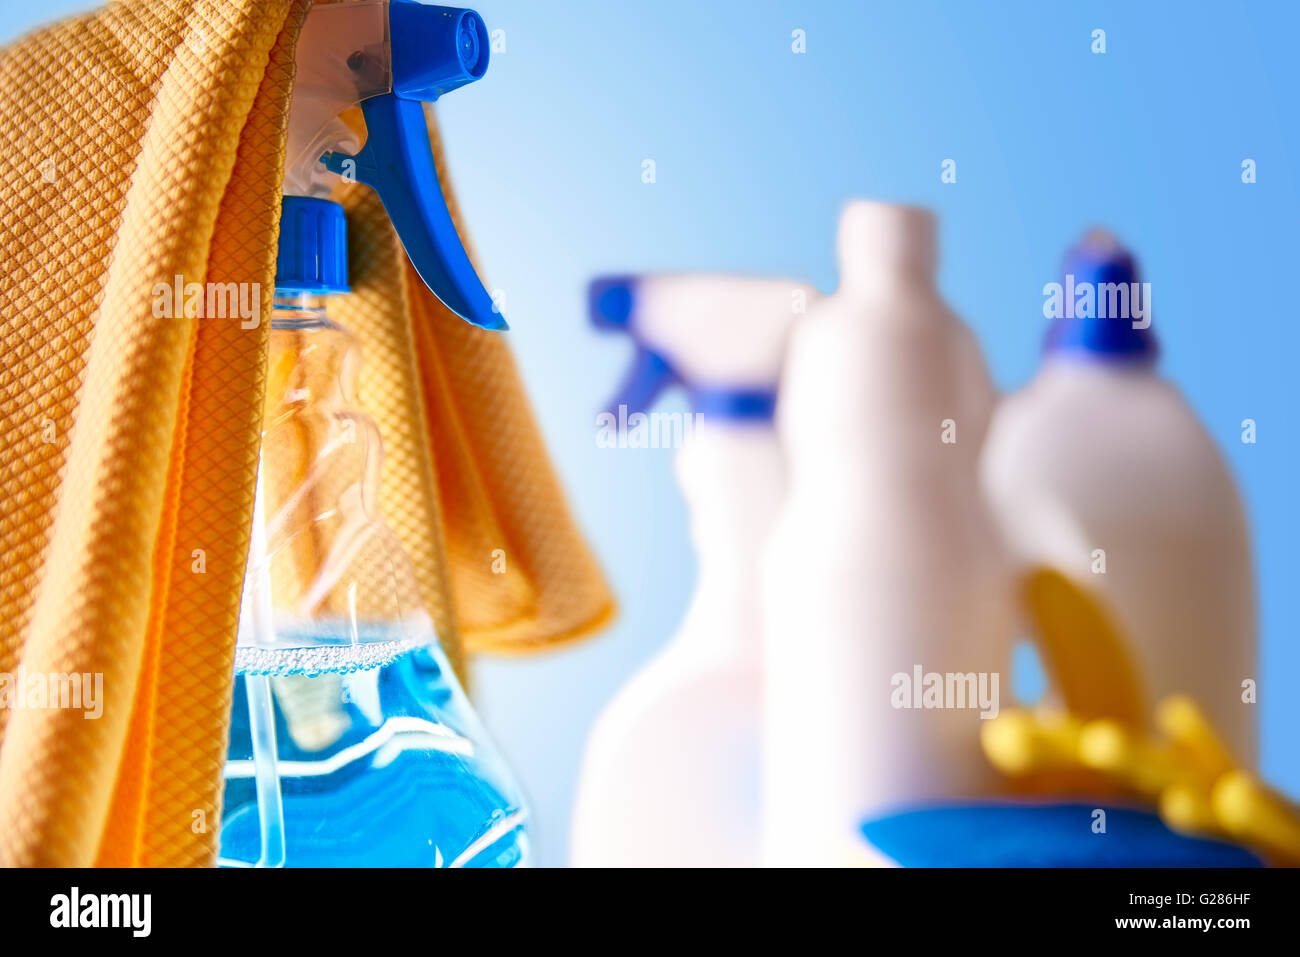 Professional cleaning equipment on white table and blue background. Cleaning tools company concept. Front view. - Stock Image